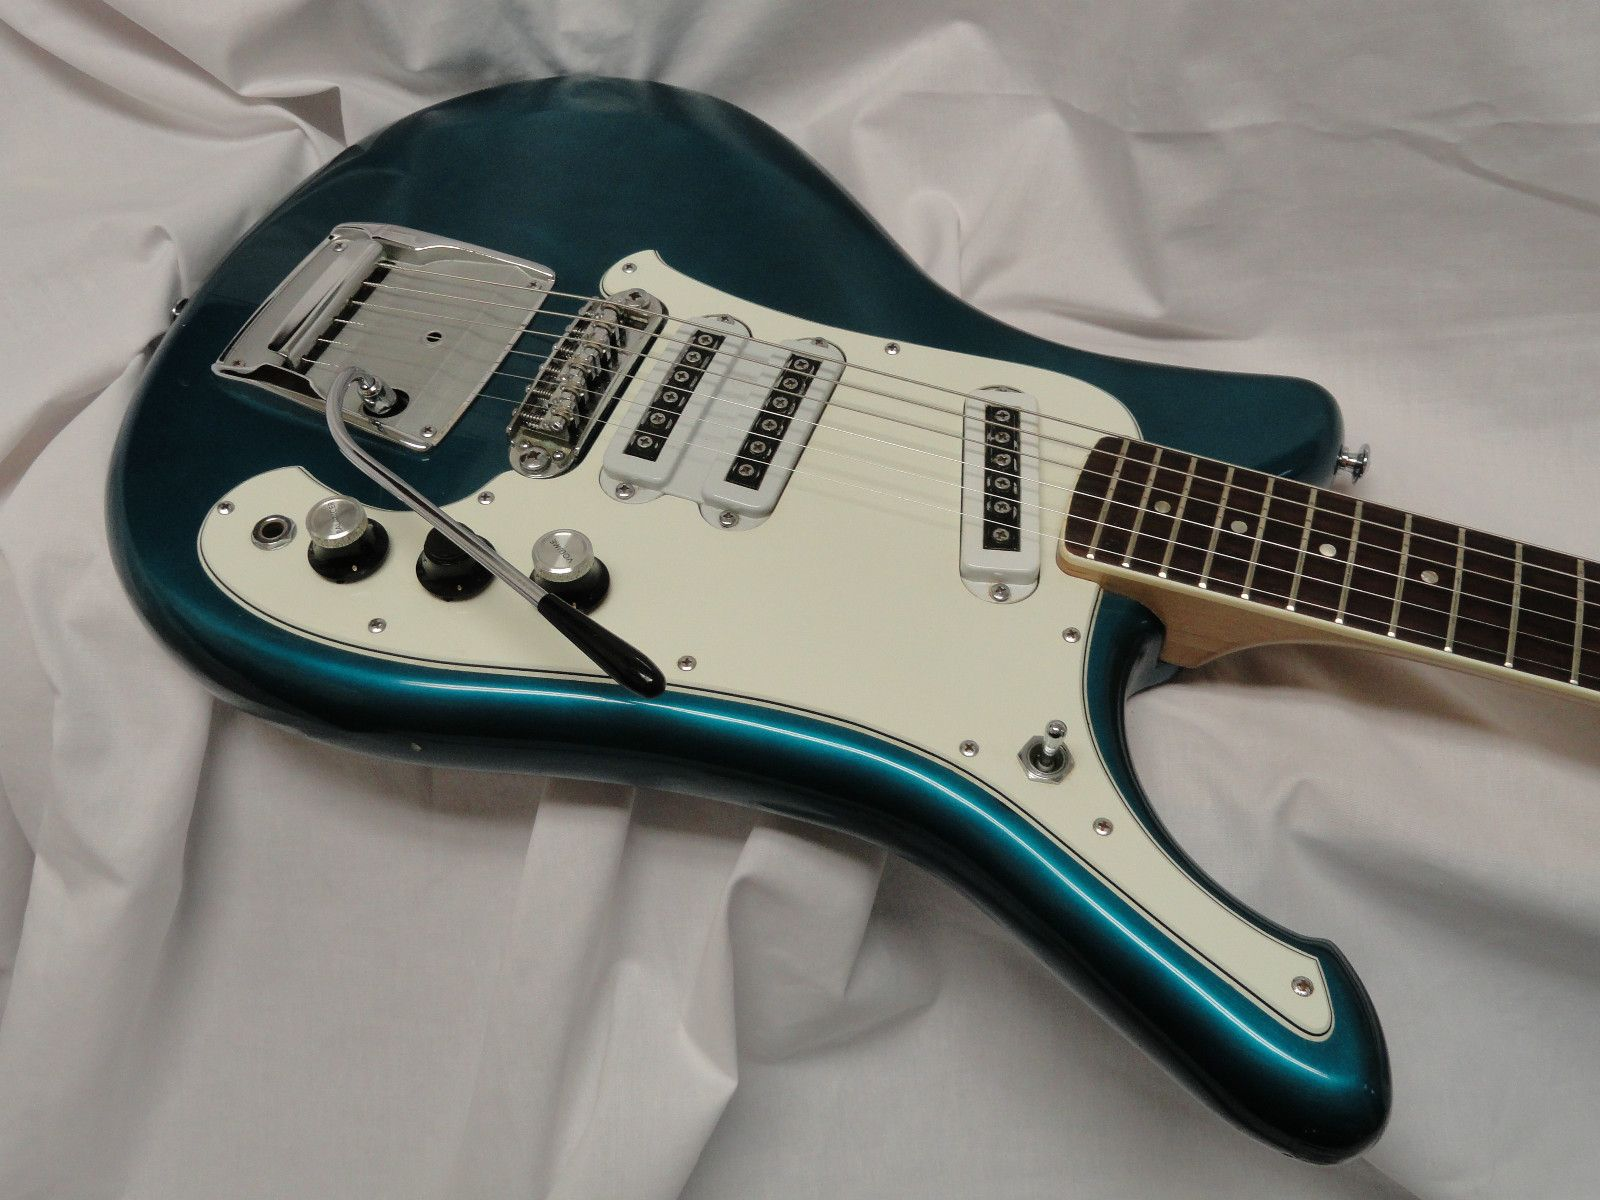 Pin On Vintage Classic 60s 70s Exotic And Cool Arty Electric Guitars And More